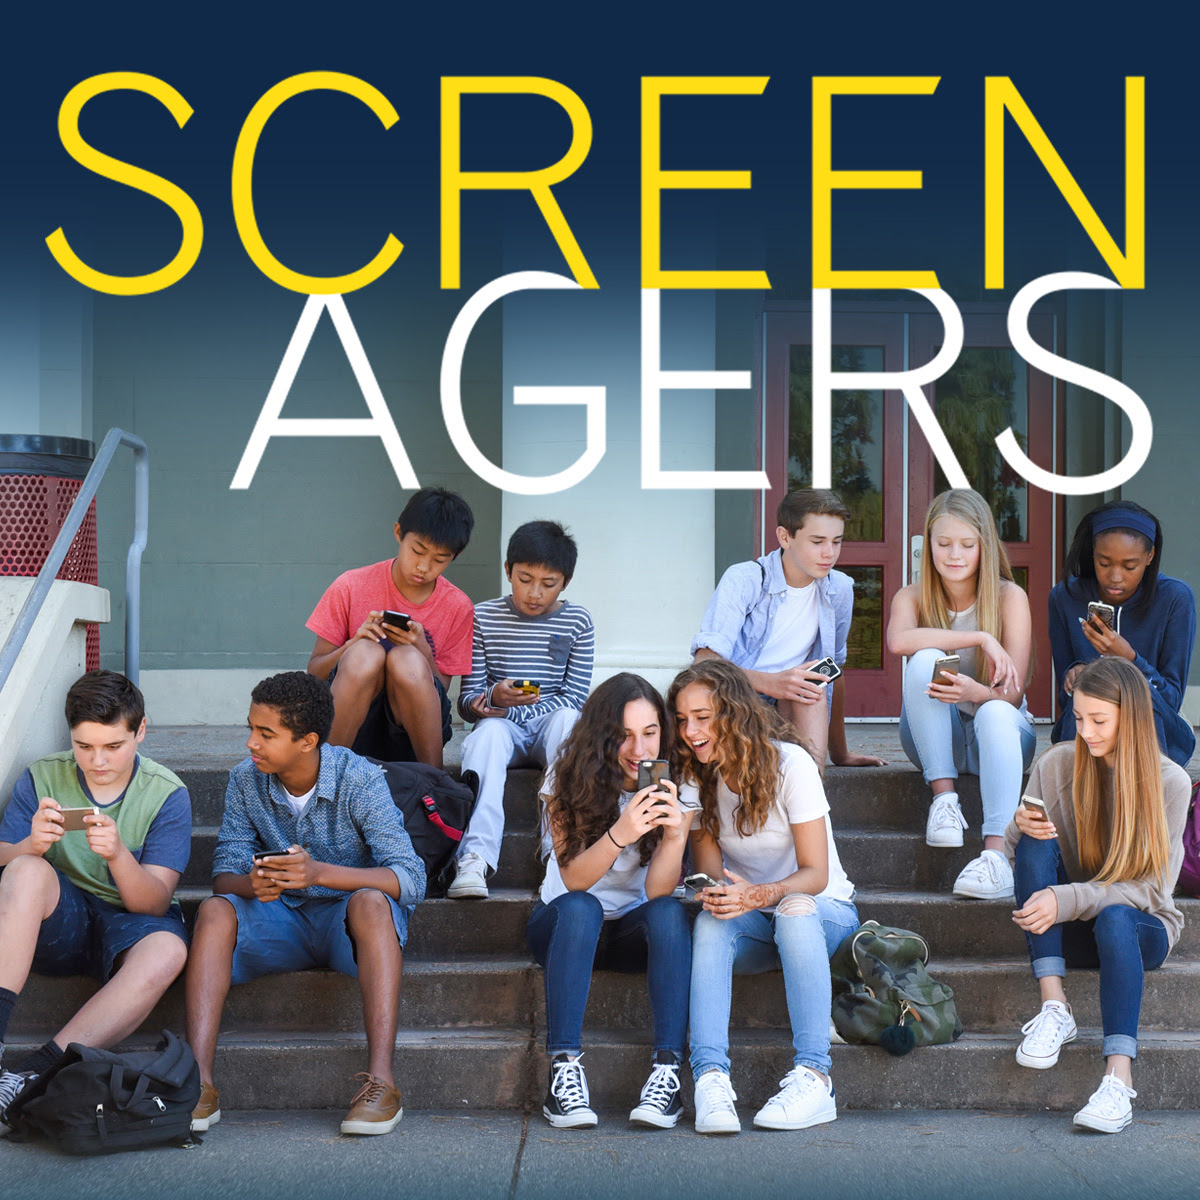 Screenagers Film Presented By St. Mary of the Immaculate Conception School & Parent Club